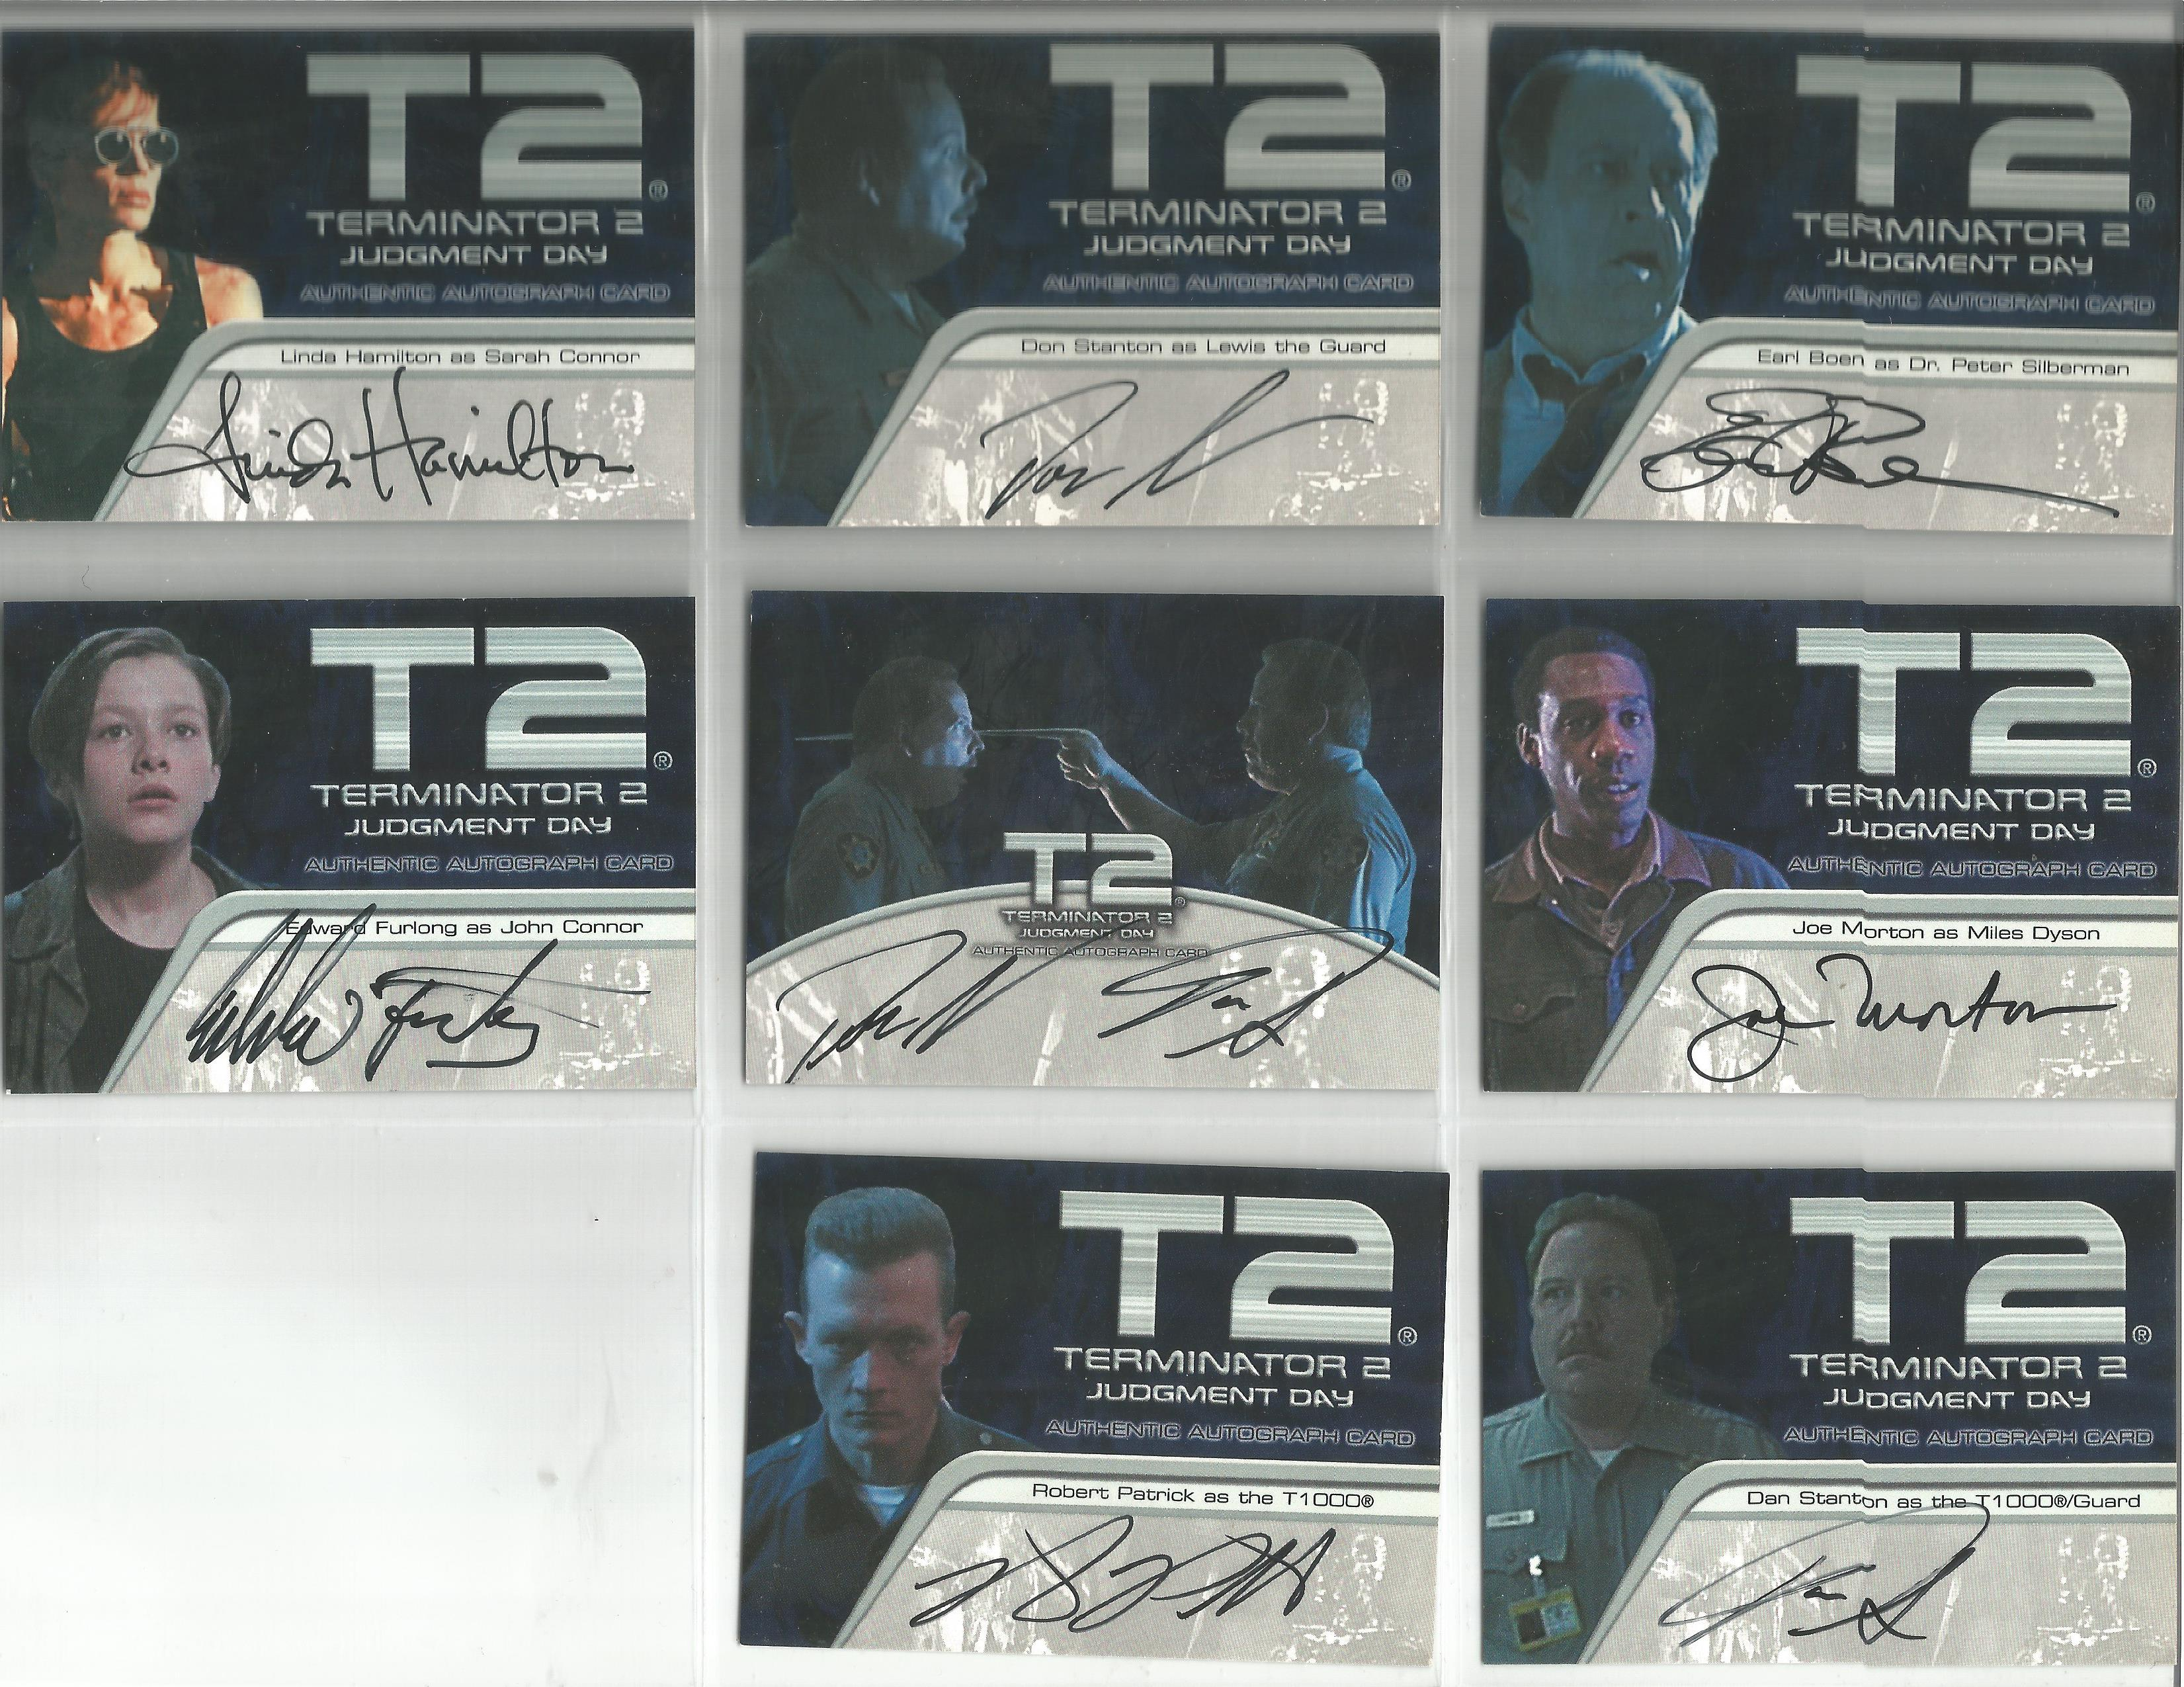 Lot 1 - Terminator 2 Judgement Day collection of 8 autographed Artbox trading cards. Each card has picture